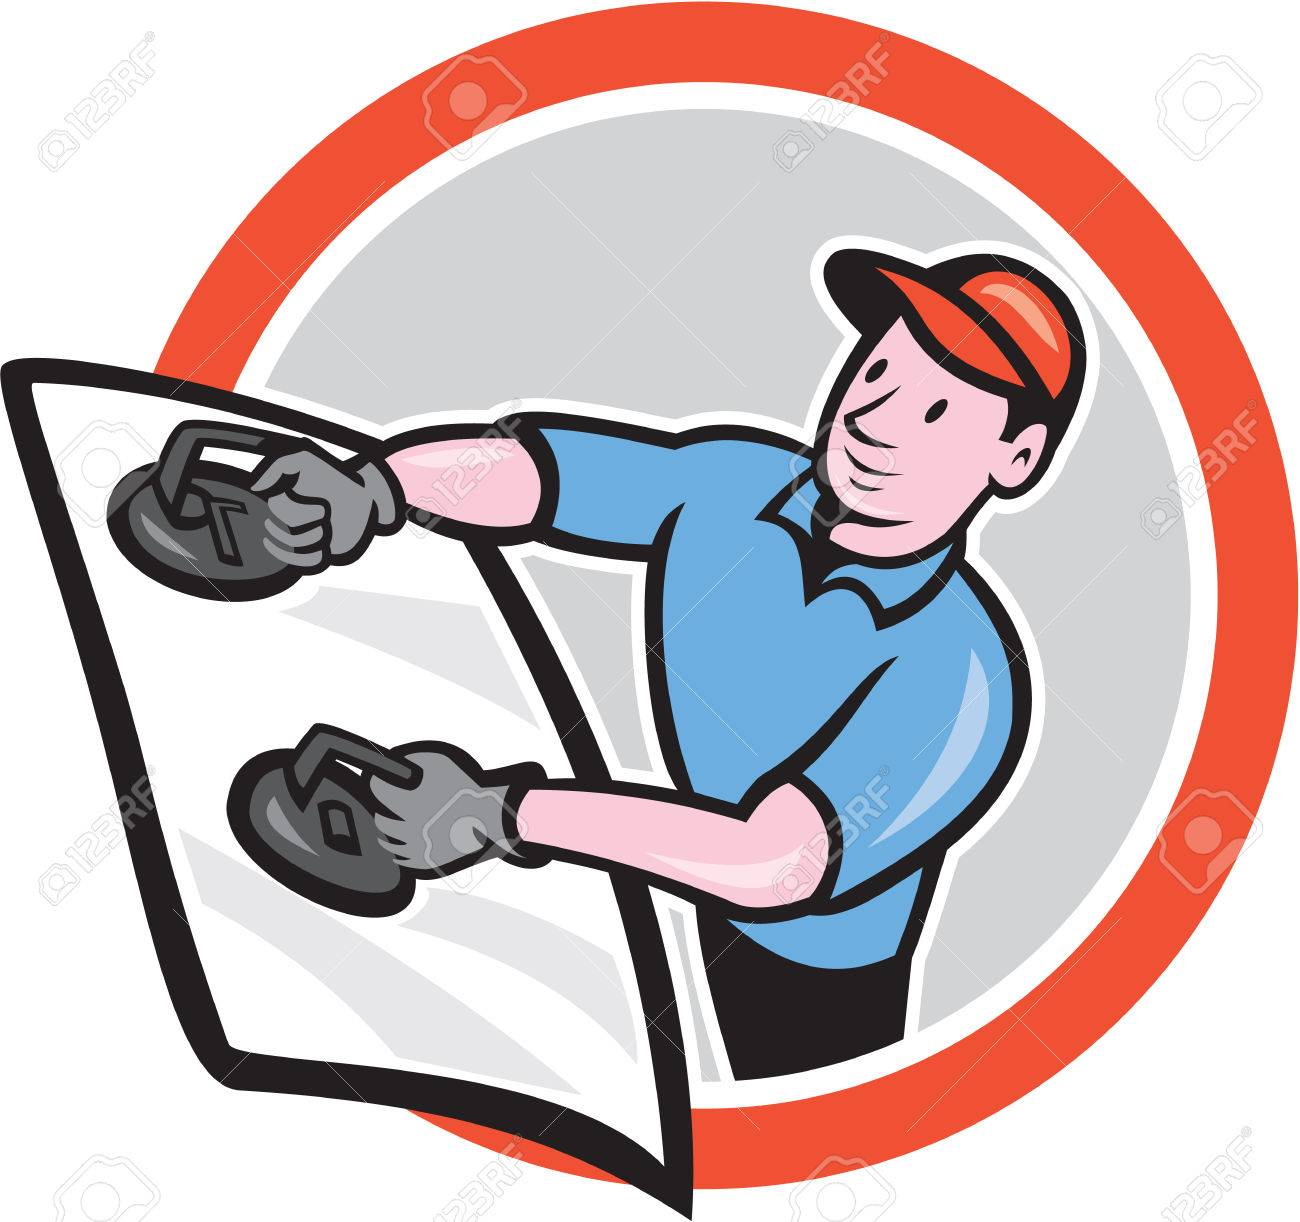 Illustration of automotive glass installer carrying windshield viewed from front set inside circle on isolated background done in cartoon style. Stock Vector - 29533408